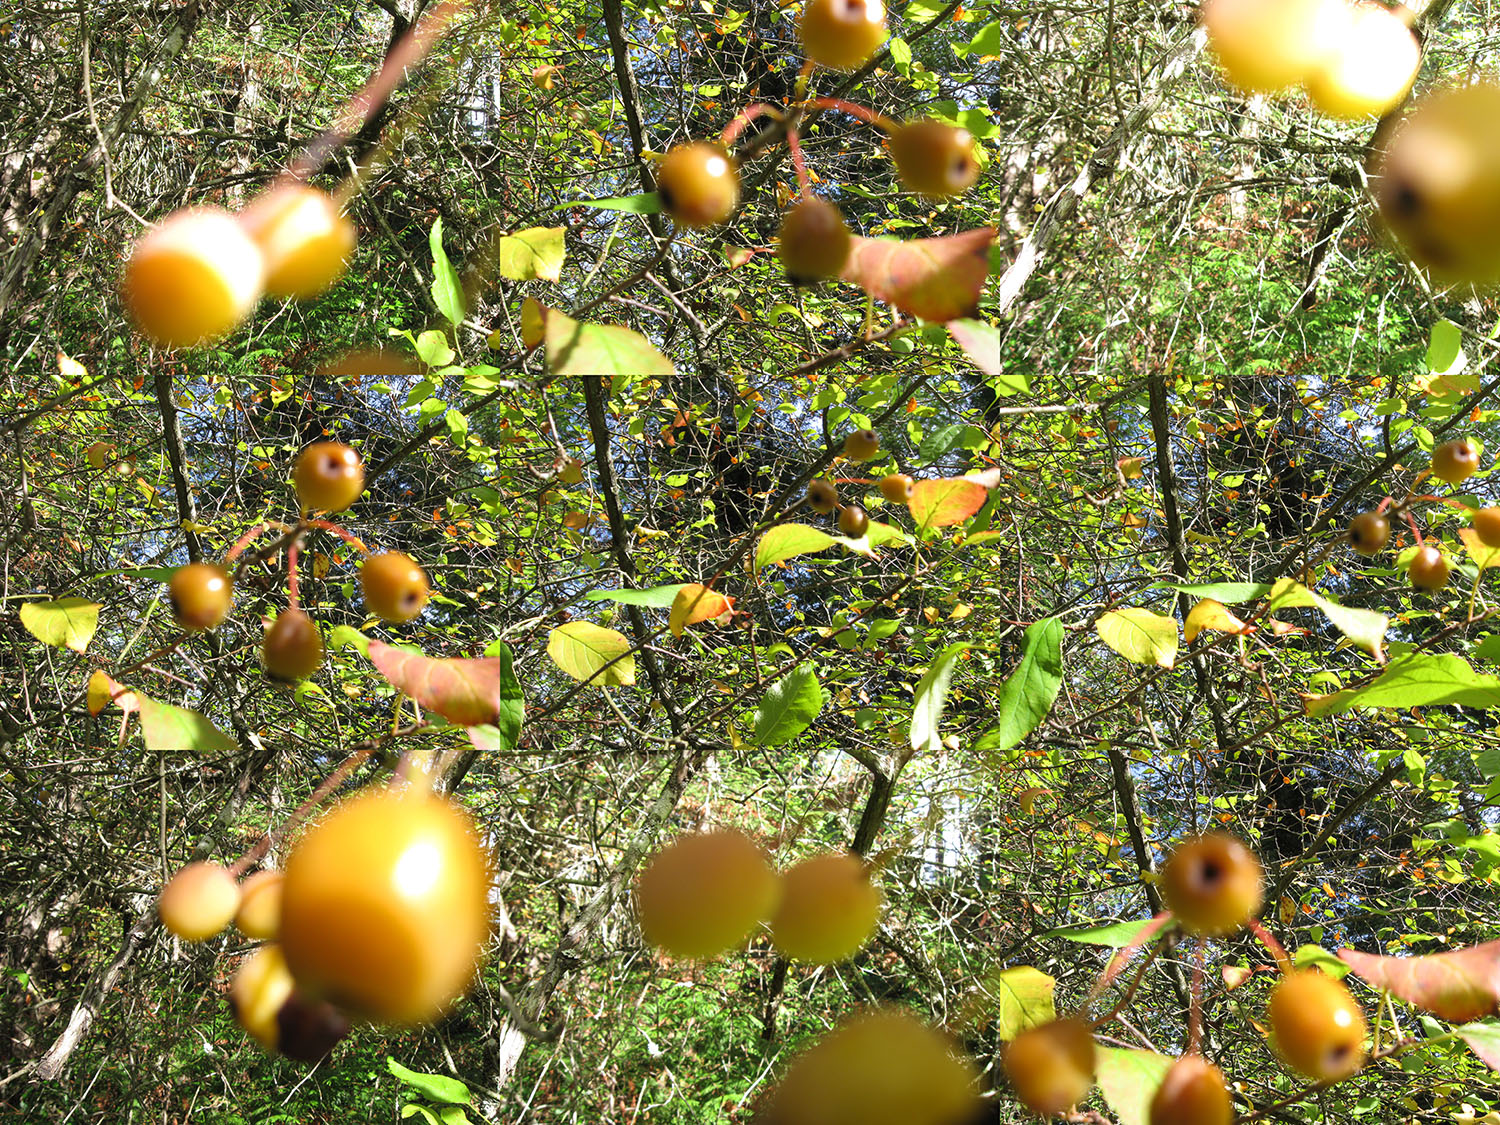 2015 Oct 15 crabapple fruit Malus fusca Beaver Pt & Demetri Rd SSI Gordon Brent Brochu-Ingram #3(small)